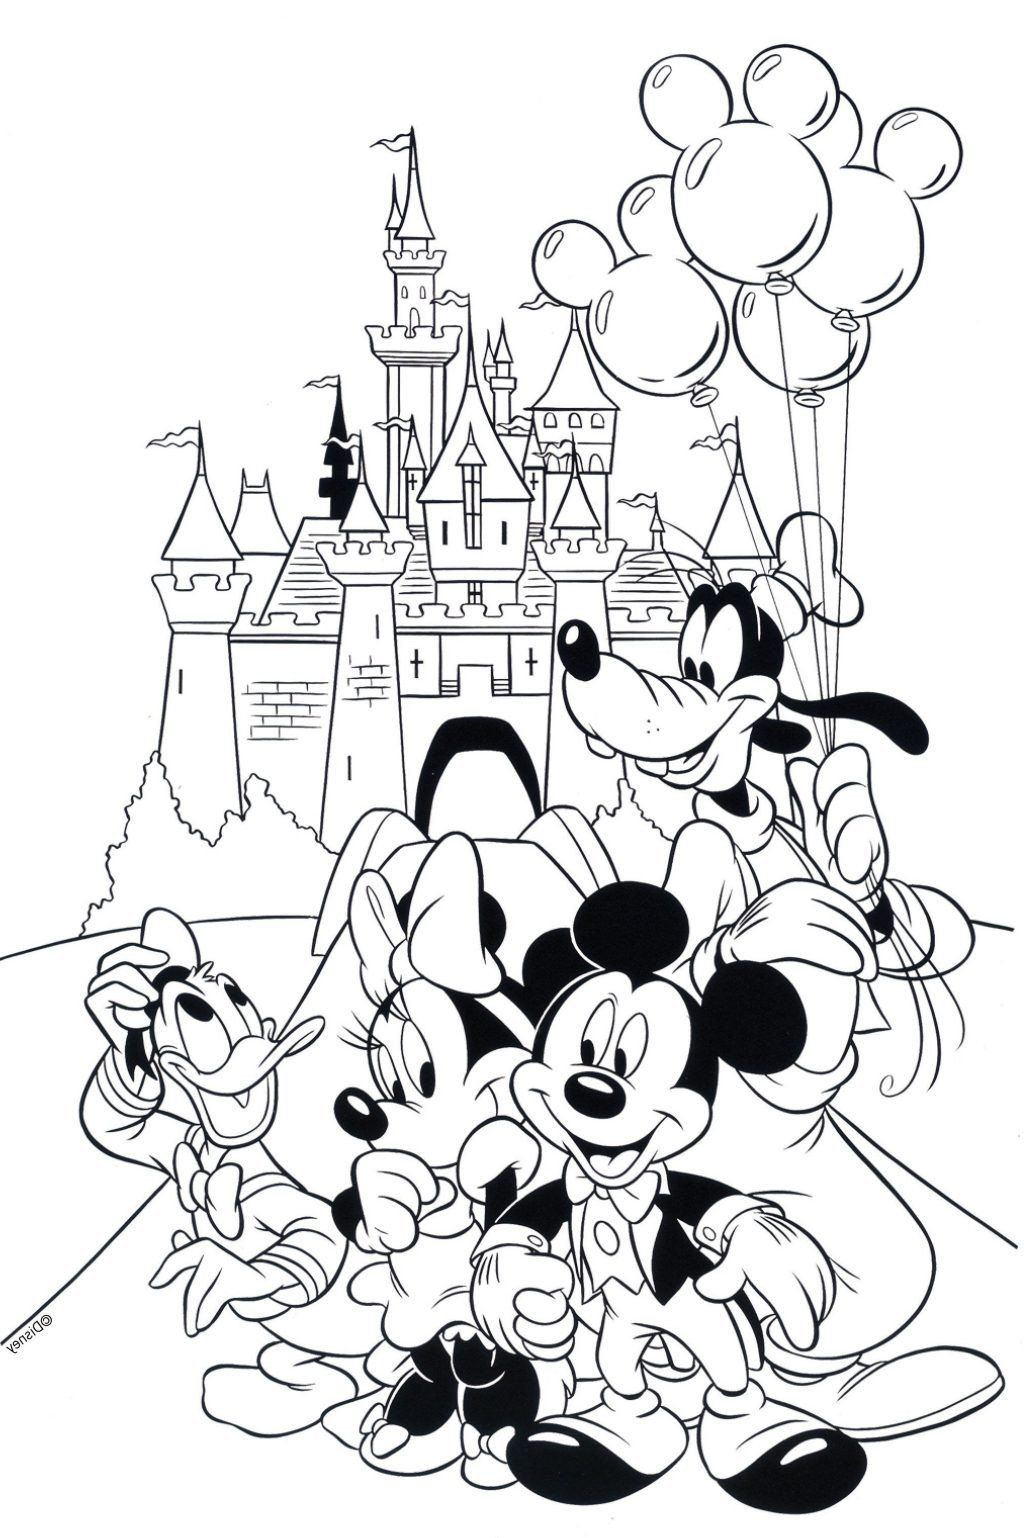 Disney World Coloring Pages Awesome Coloring Pages Coloring Book Pages Disney Princess Cartoon Coloring Pages Mickey Mouse Coloring Pages Disney Coloring Pages